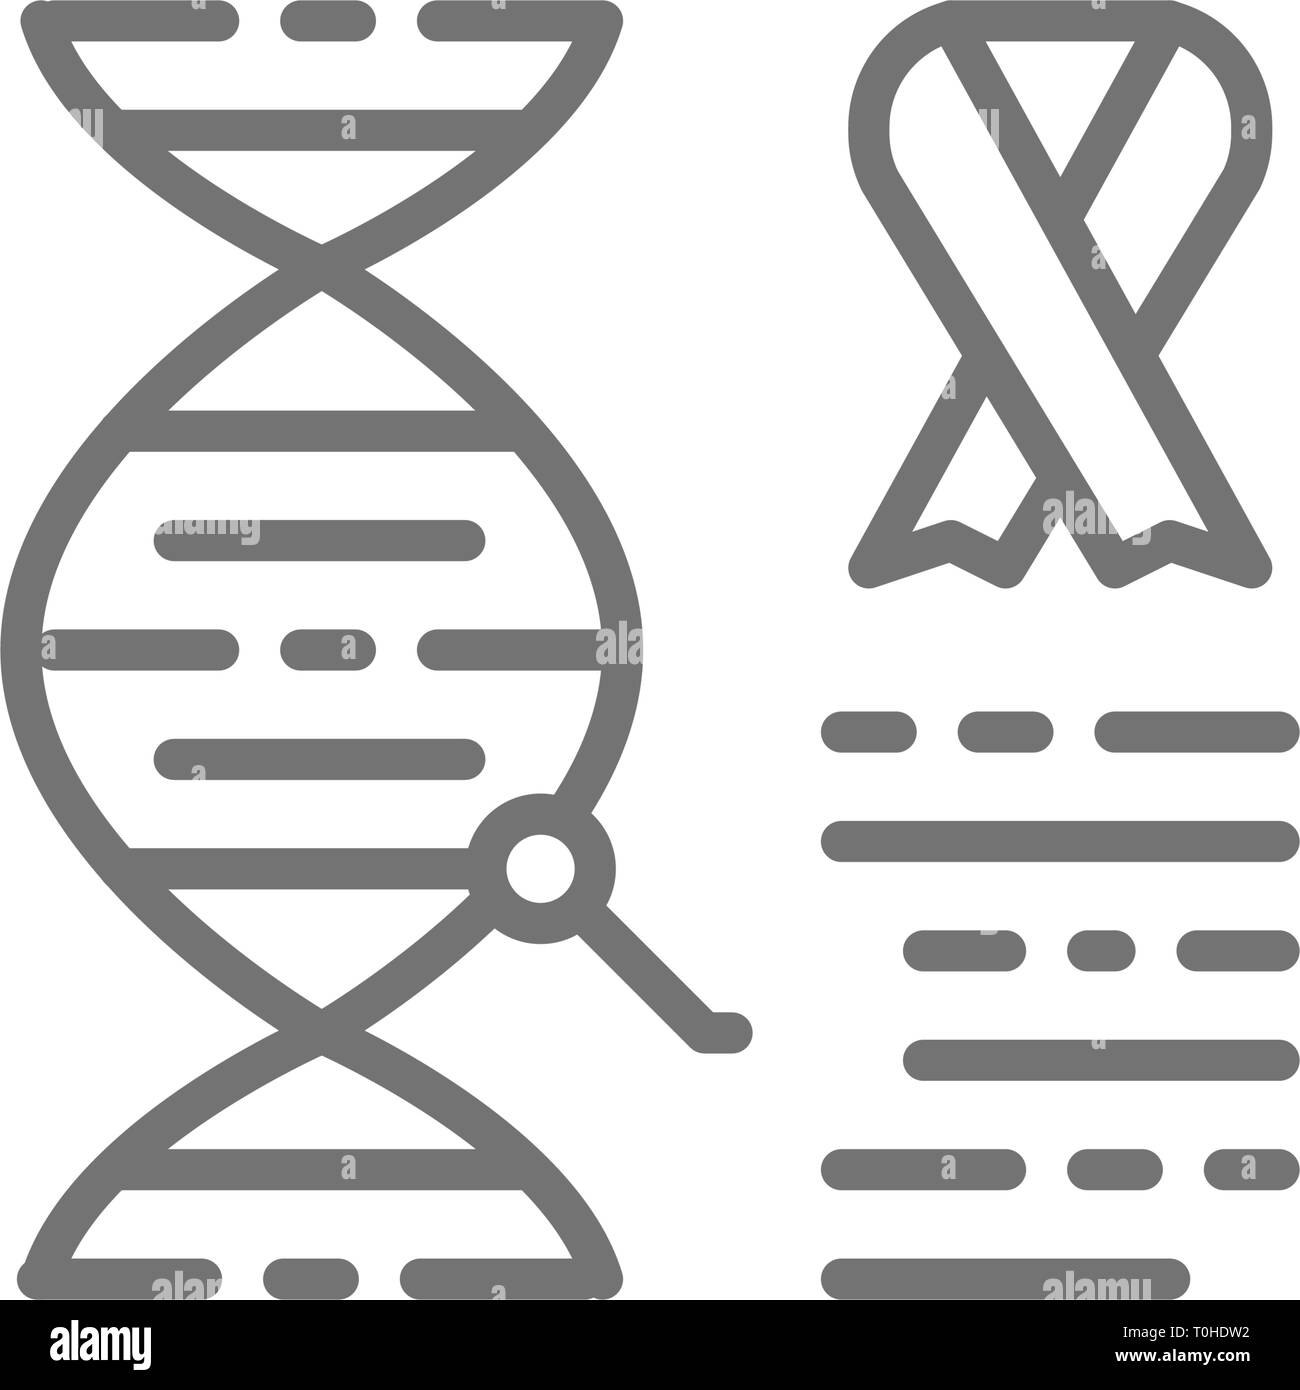 Dna molecule with cancer cells, malignant tumor, oncology line icon. - Stock Image